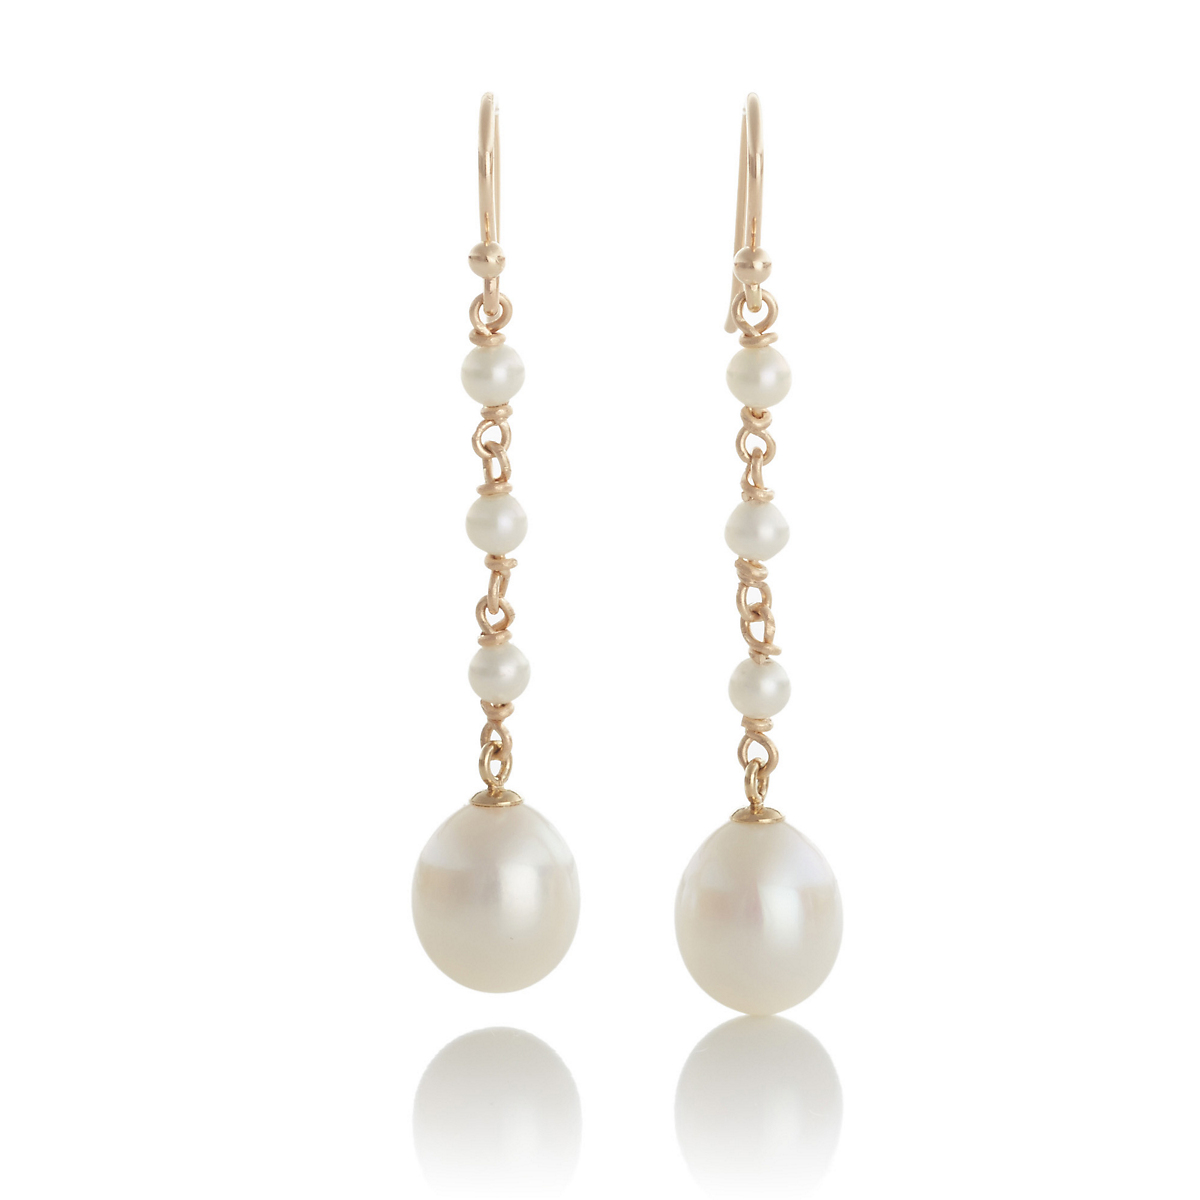 Gump's White Pearl Long Drop Earrings